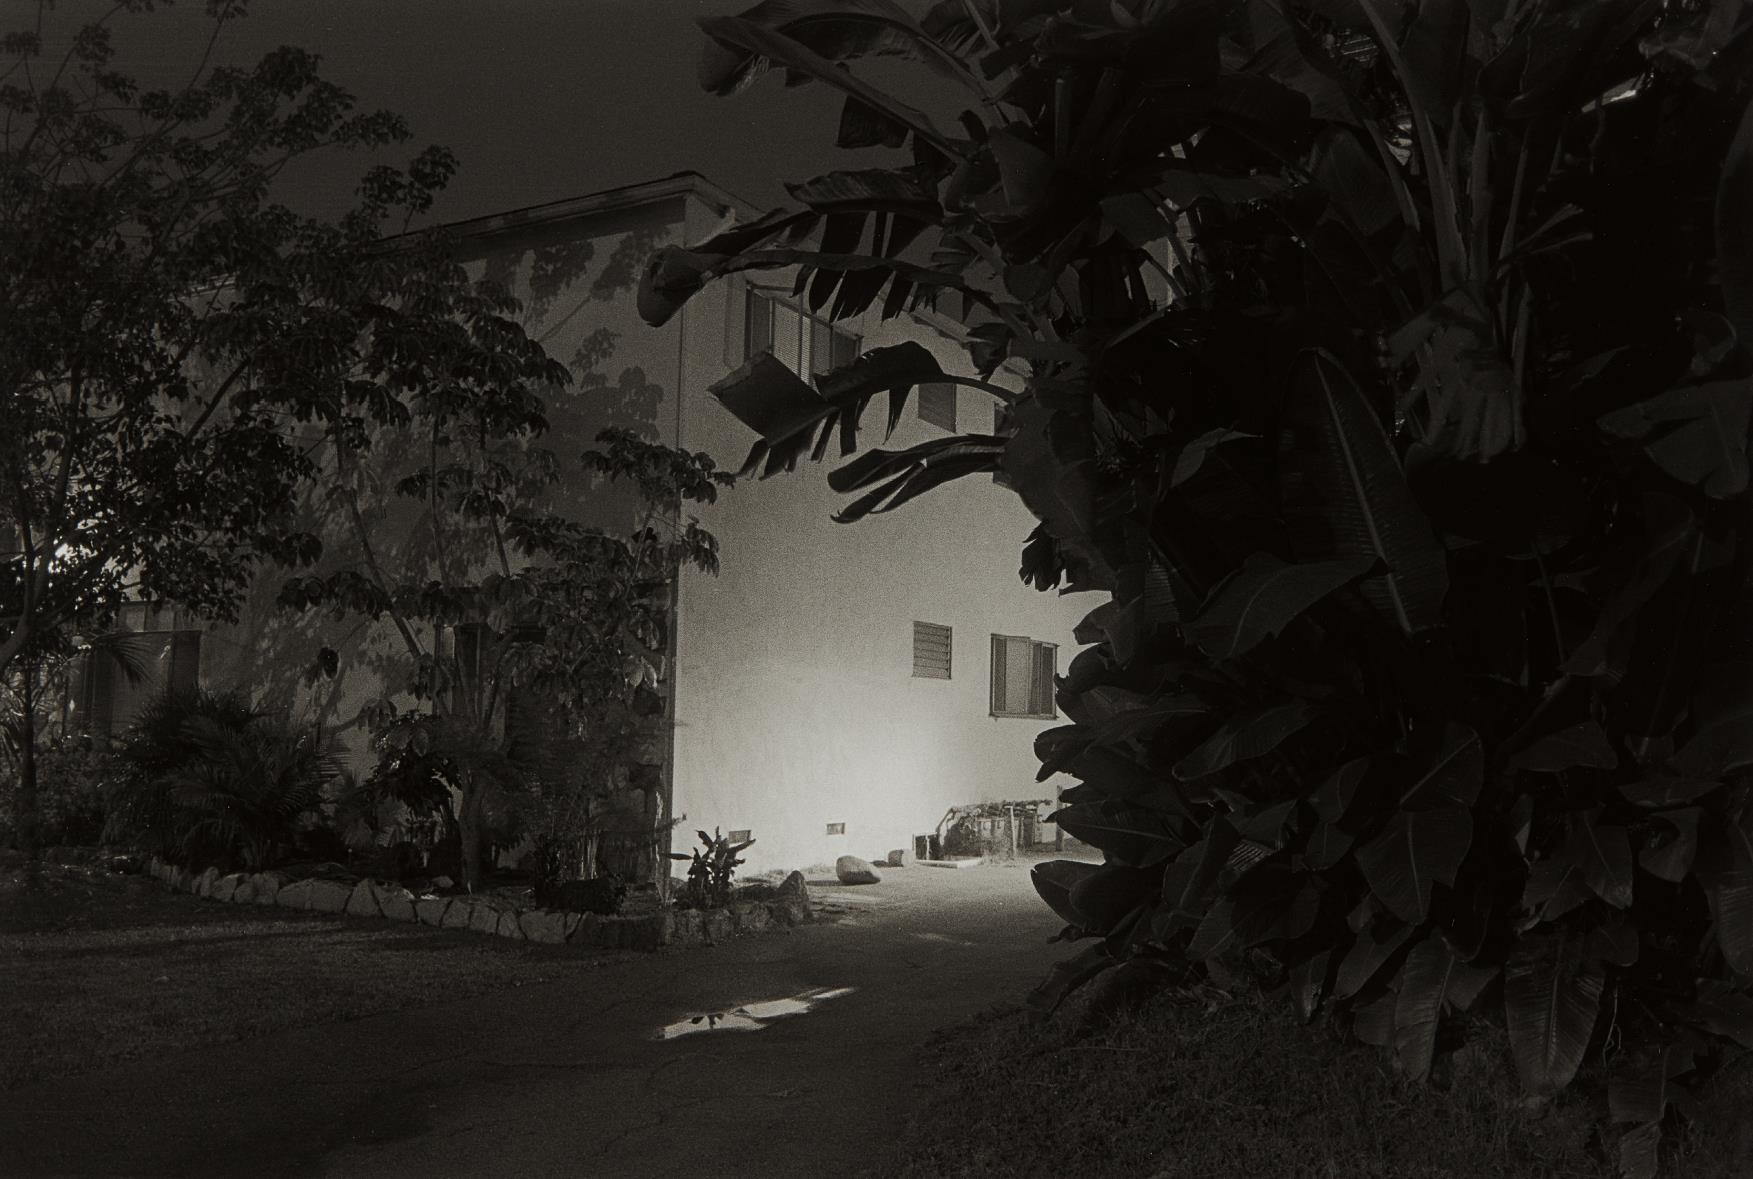 Henry Wessel-Night Walk, Los Angeles, No. 43-1995